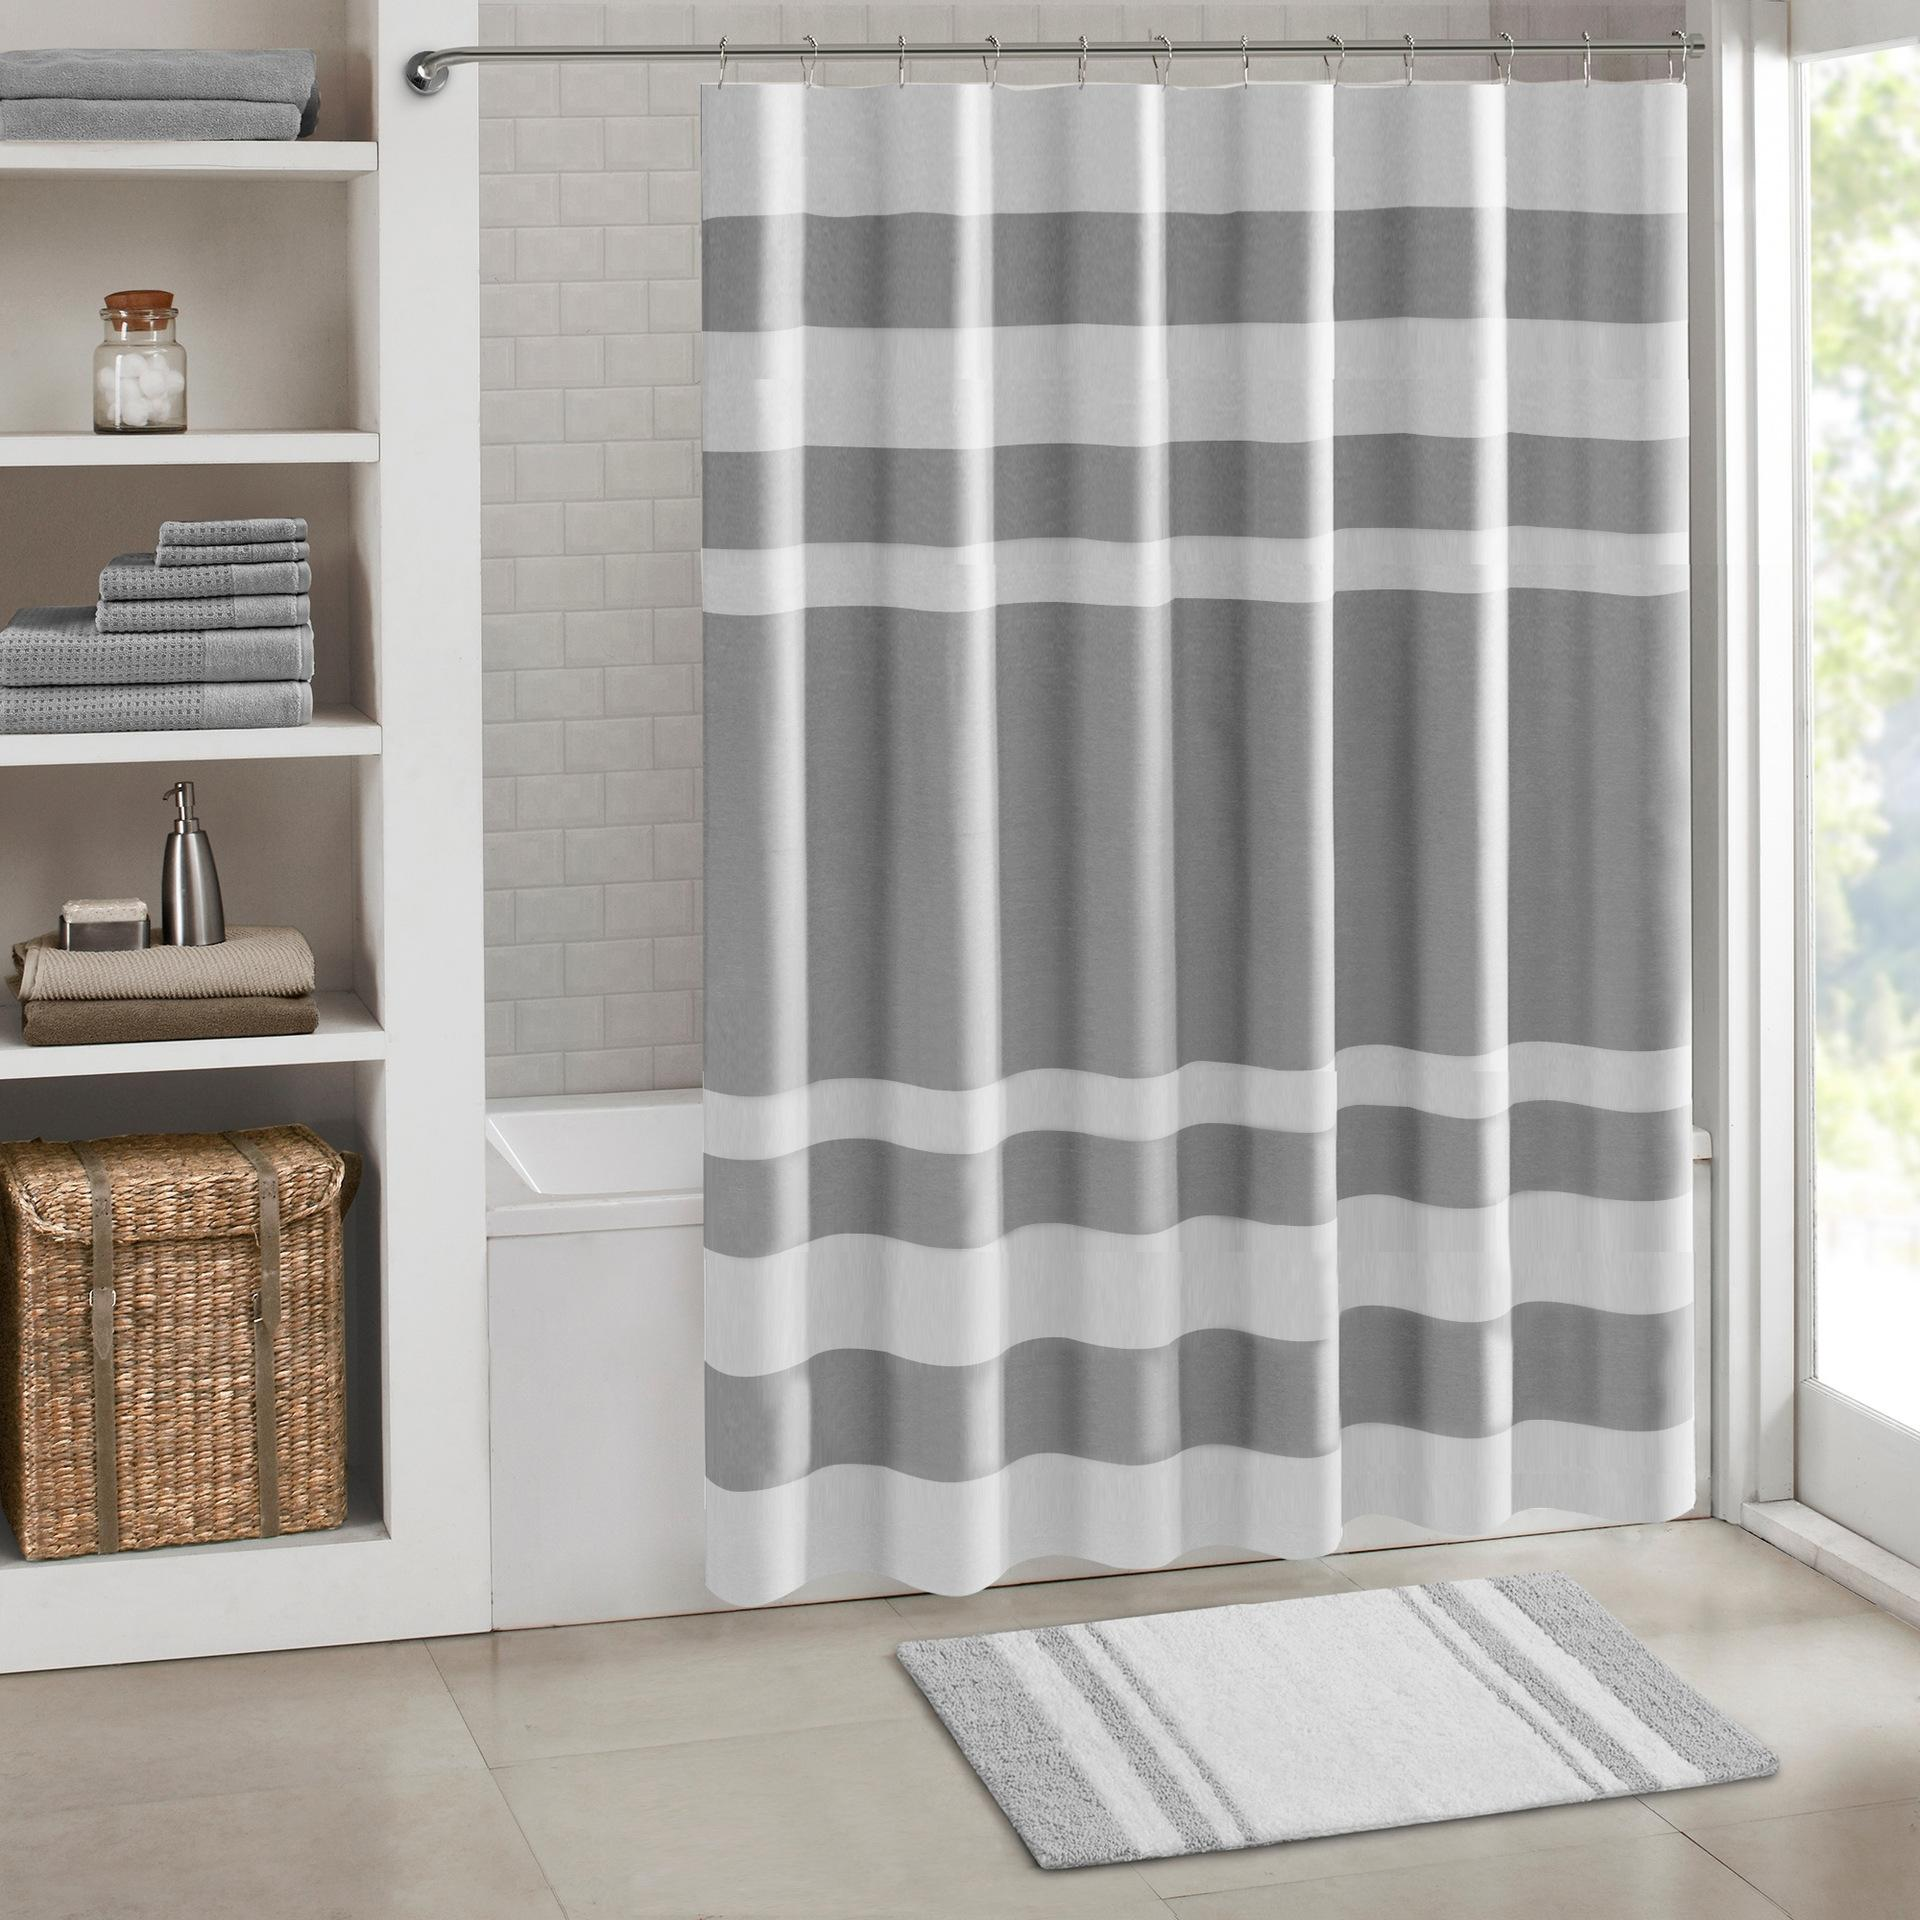 Simple Strip Pattern Bath Curtains Waterproof Polyester Fabric Washable Bathroom Shower Curtain Screen With Hooks Accessories